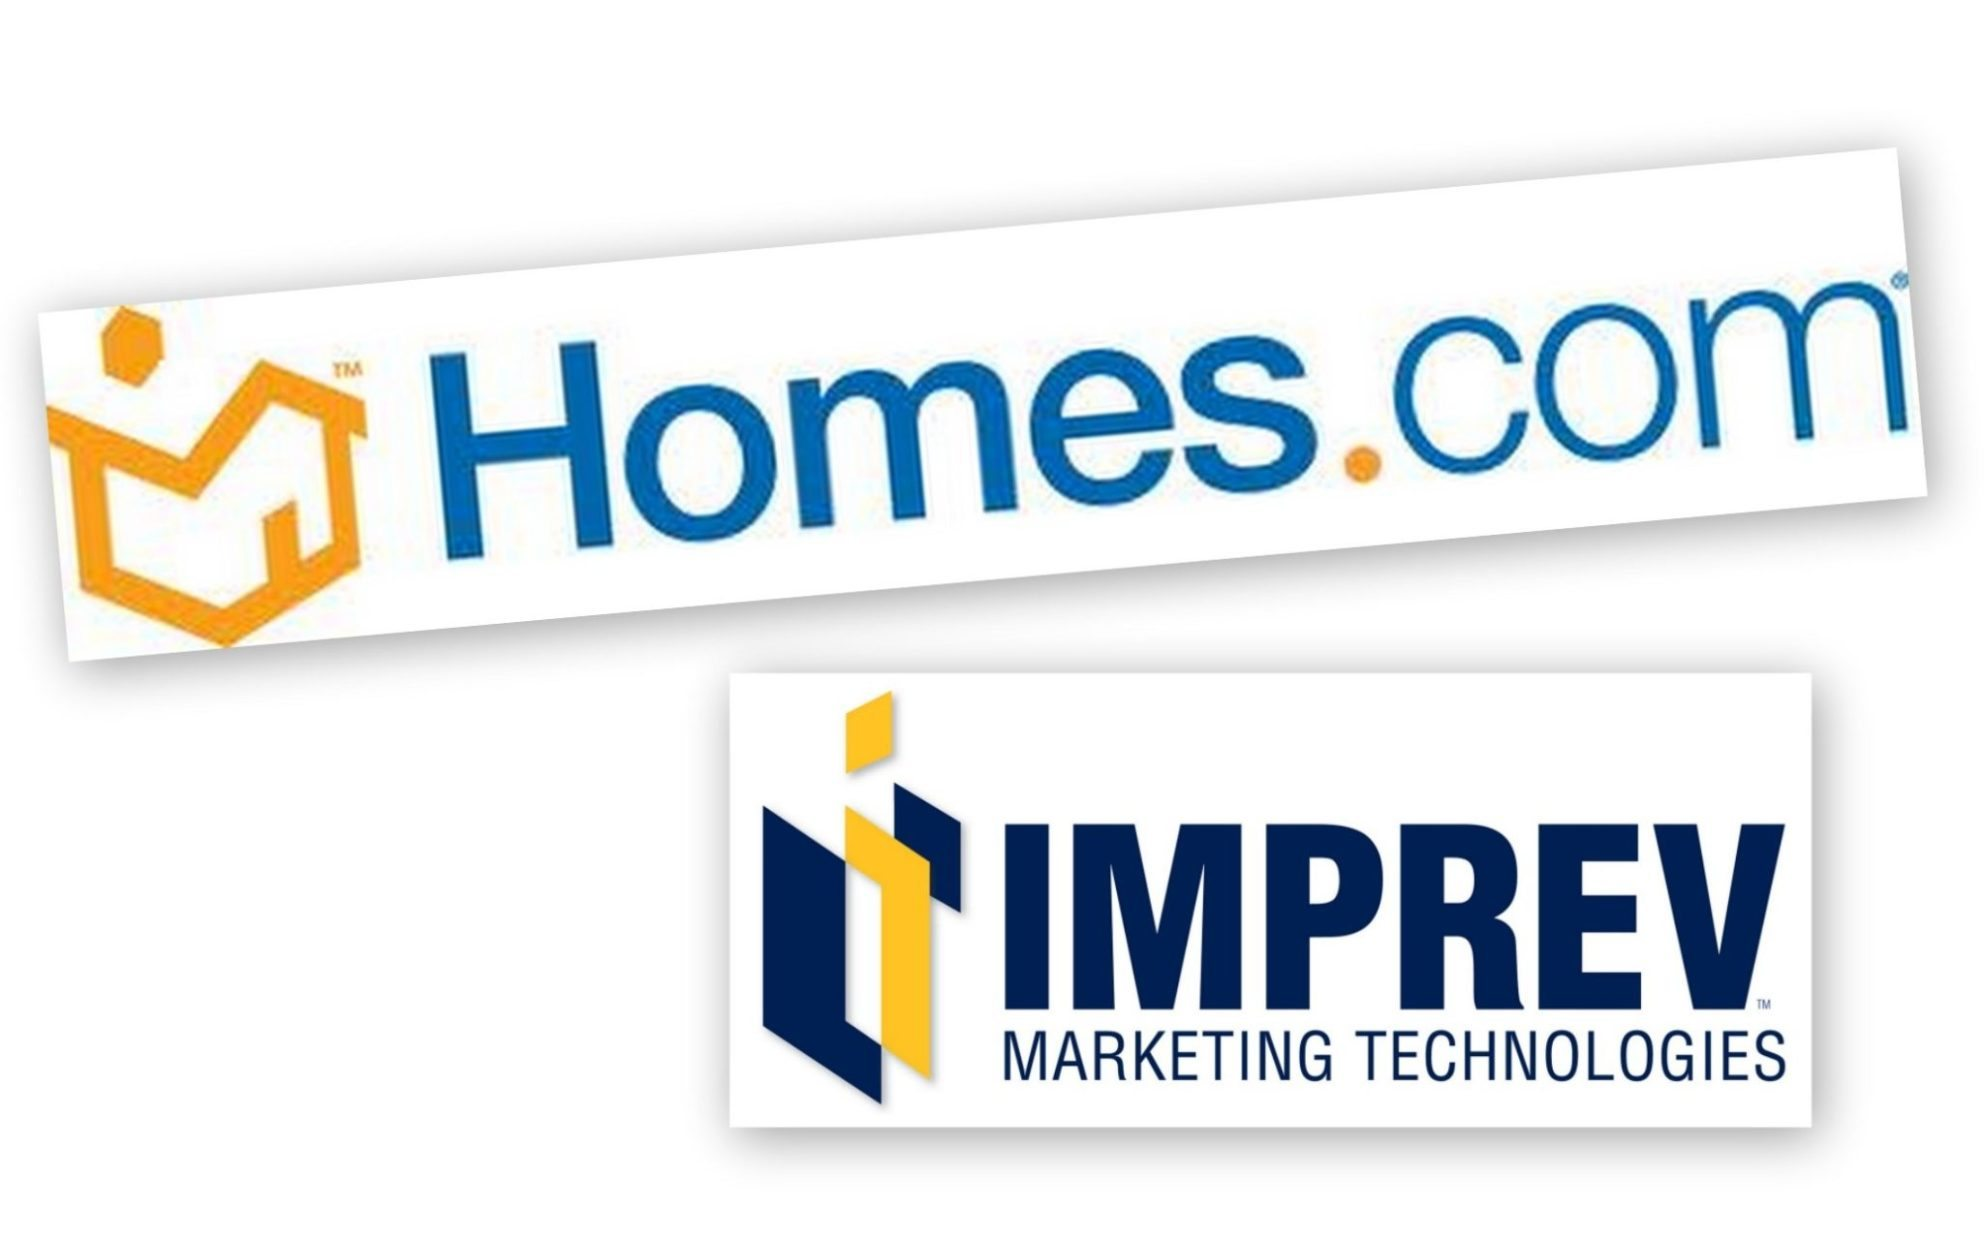 Homes.com integrating Imprev marketing center into Homes Connect